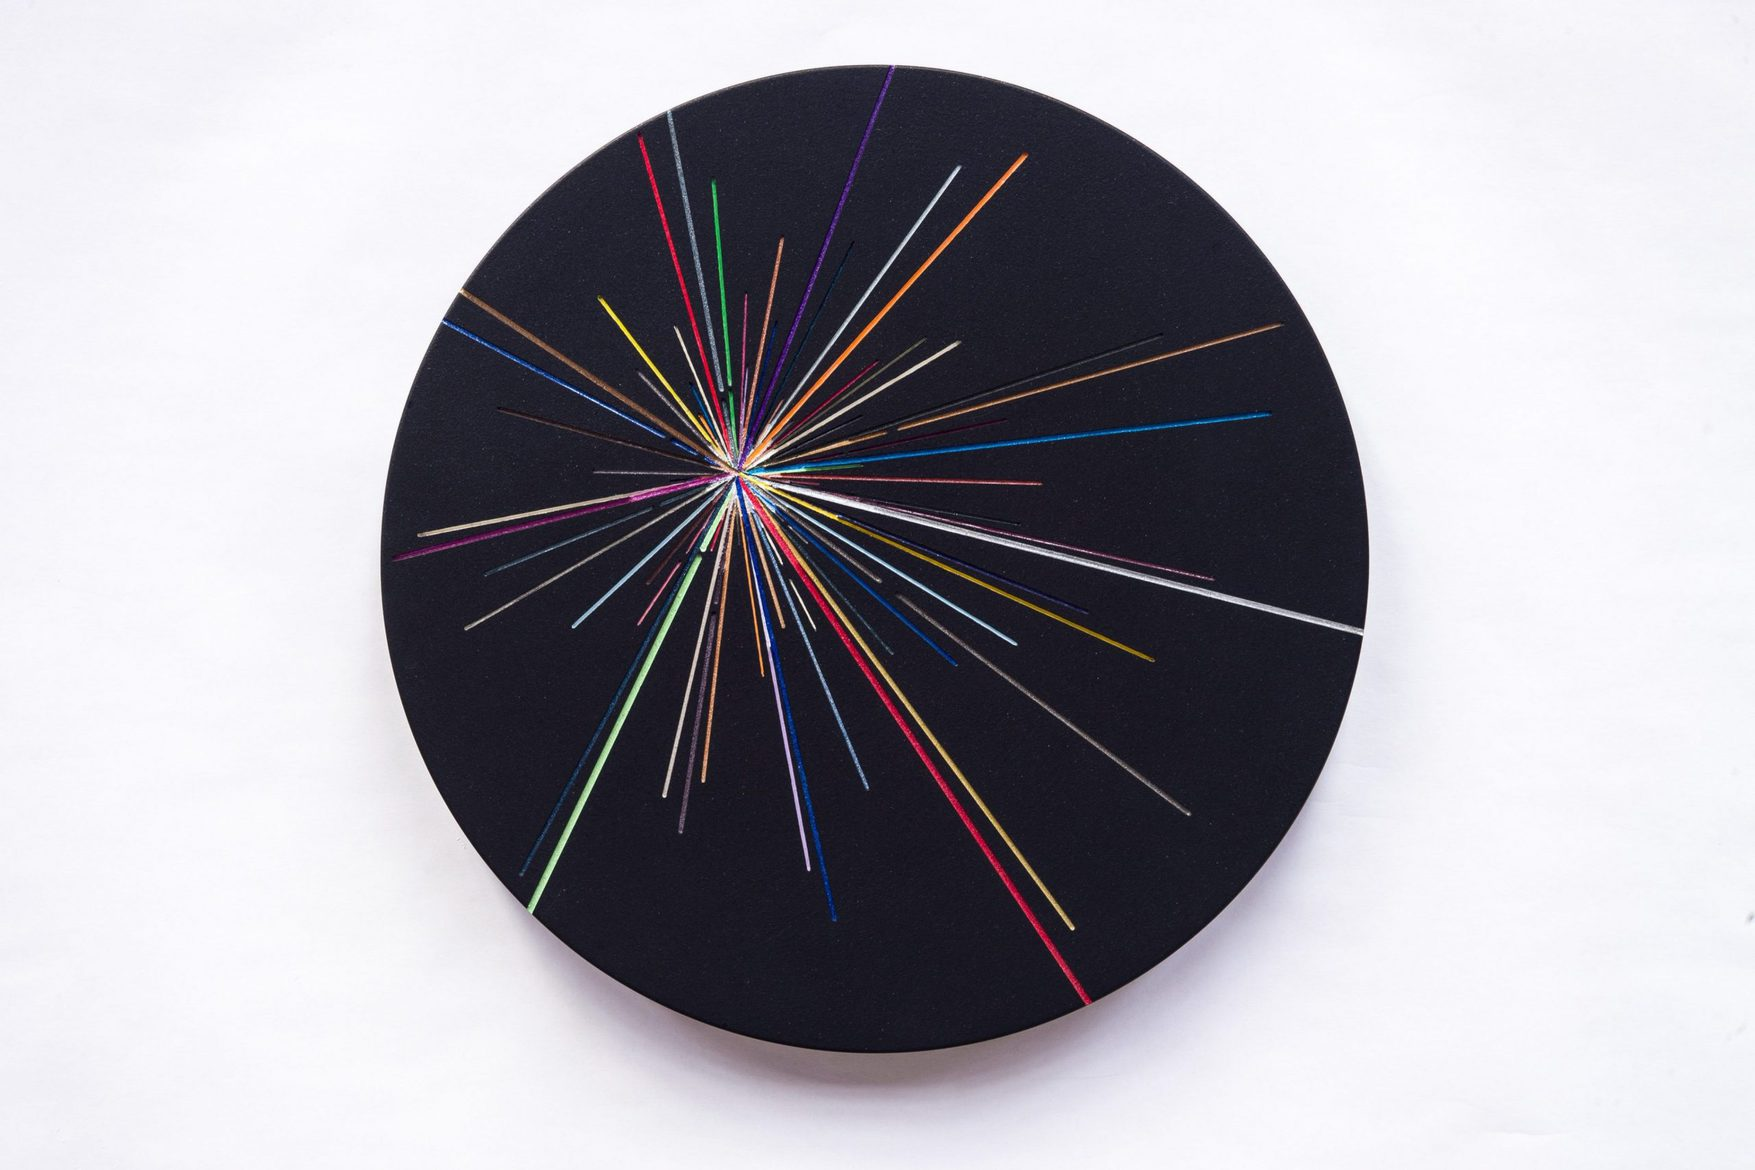 Kevin Osmond, 'Outer Space Series #1', 2015, (Freehand Routed) MDF, acrylic metallic paints, UV clear lacquer, Aluminium fixings, 36.5cm dia, wall-mounted disc x 3.5cm(d)